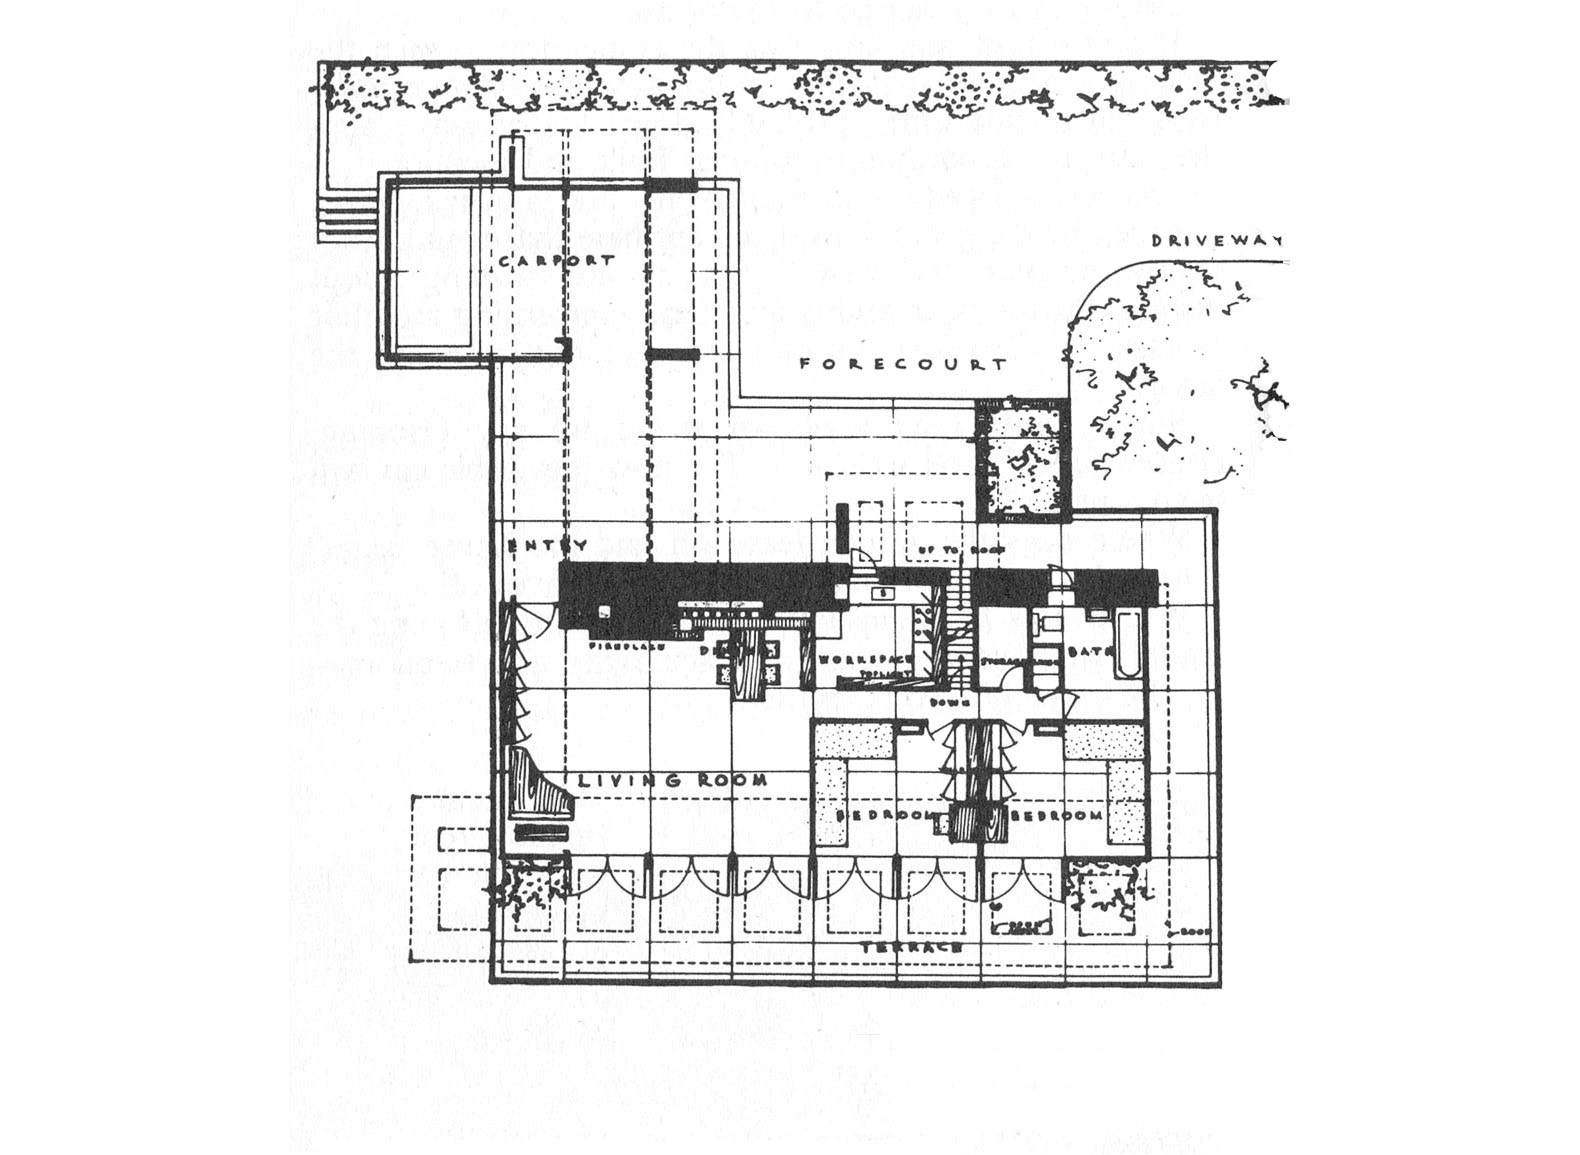 frank lloyd wright usonian house plans for sale vibrant id 93c7ab